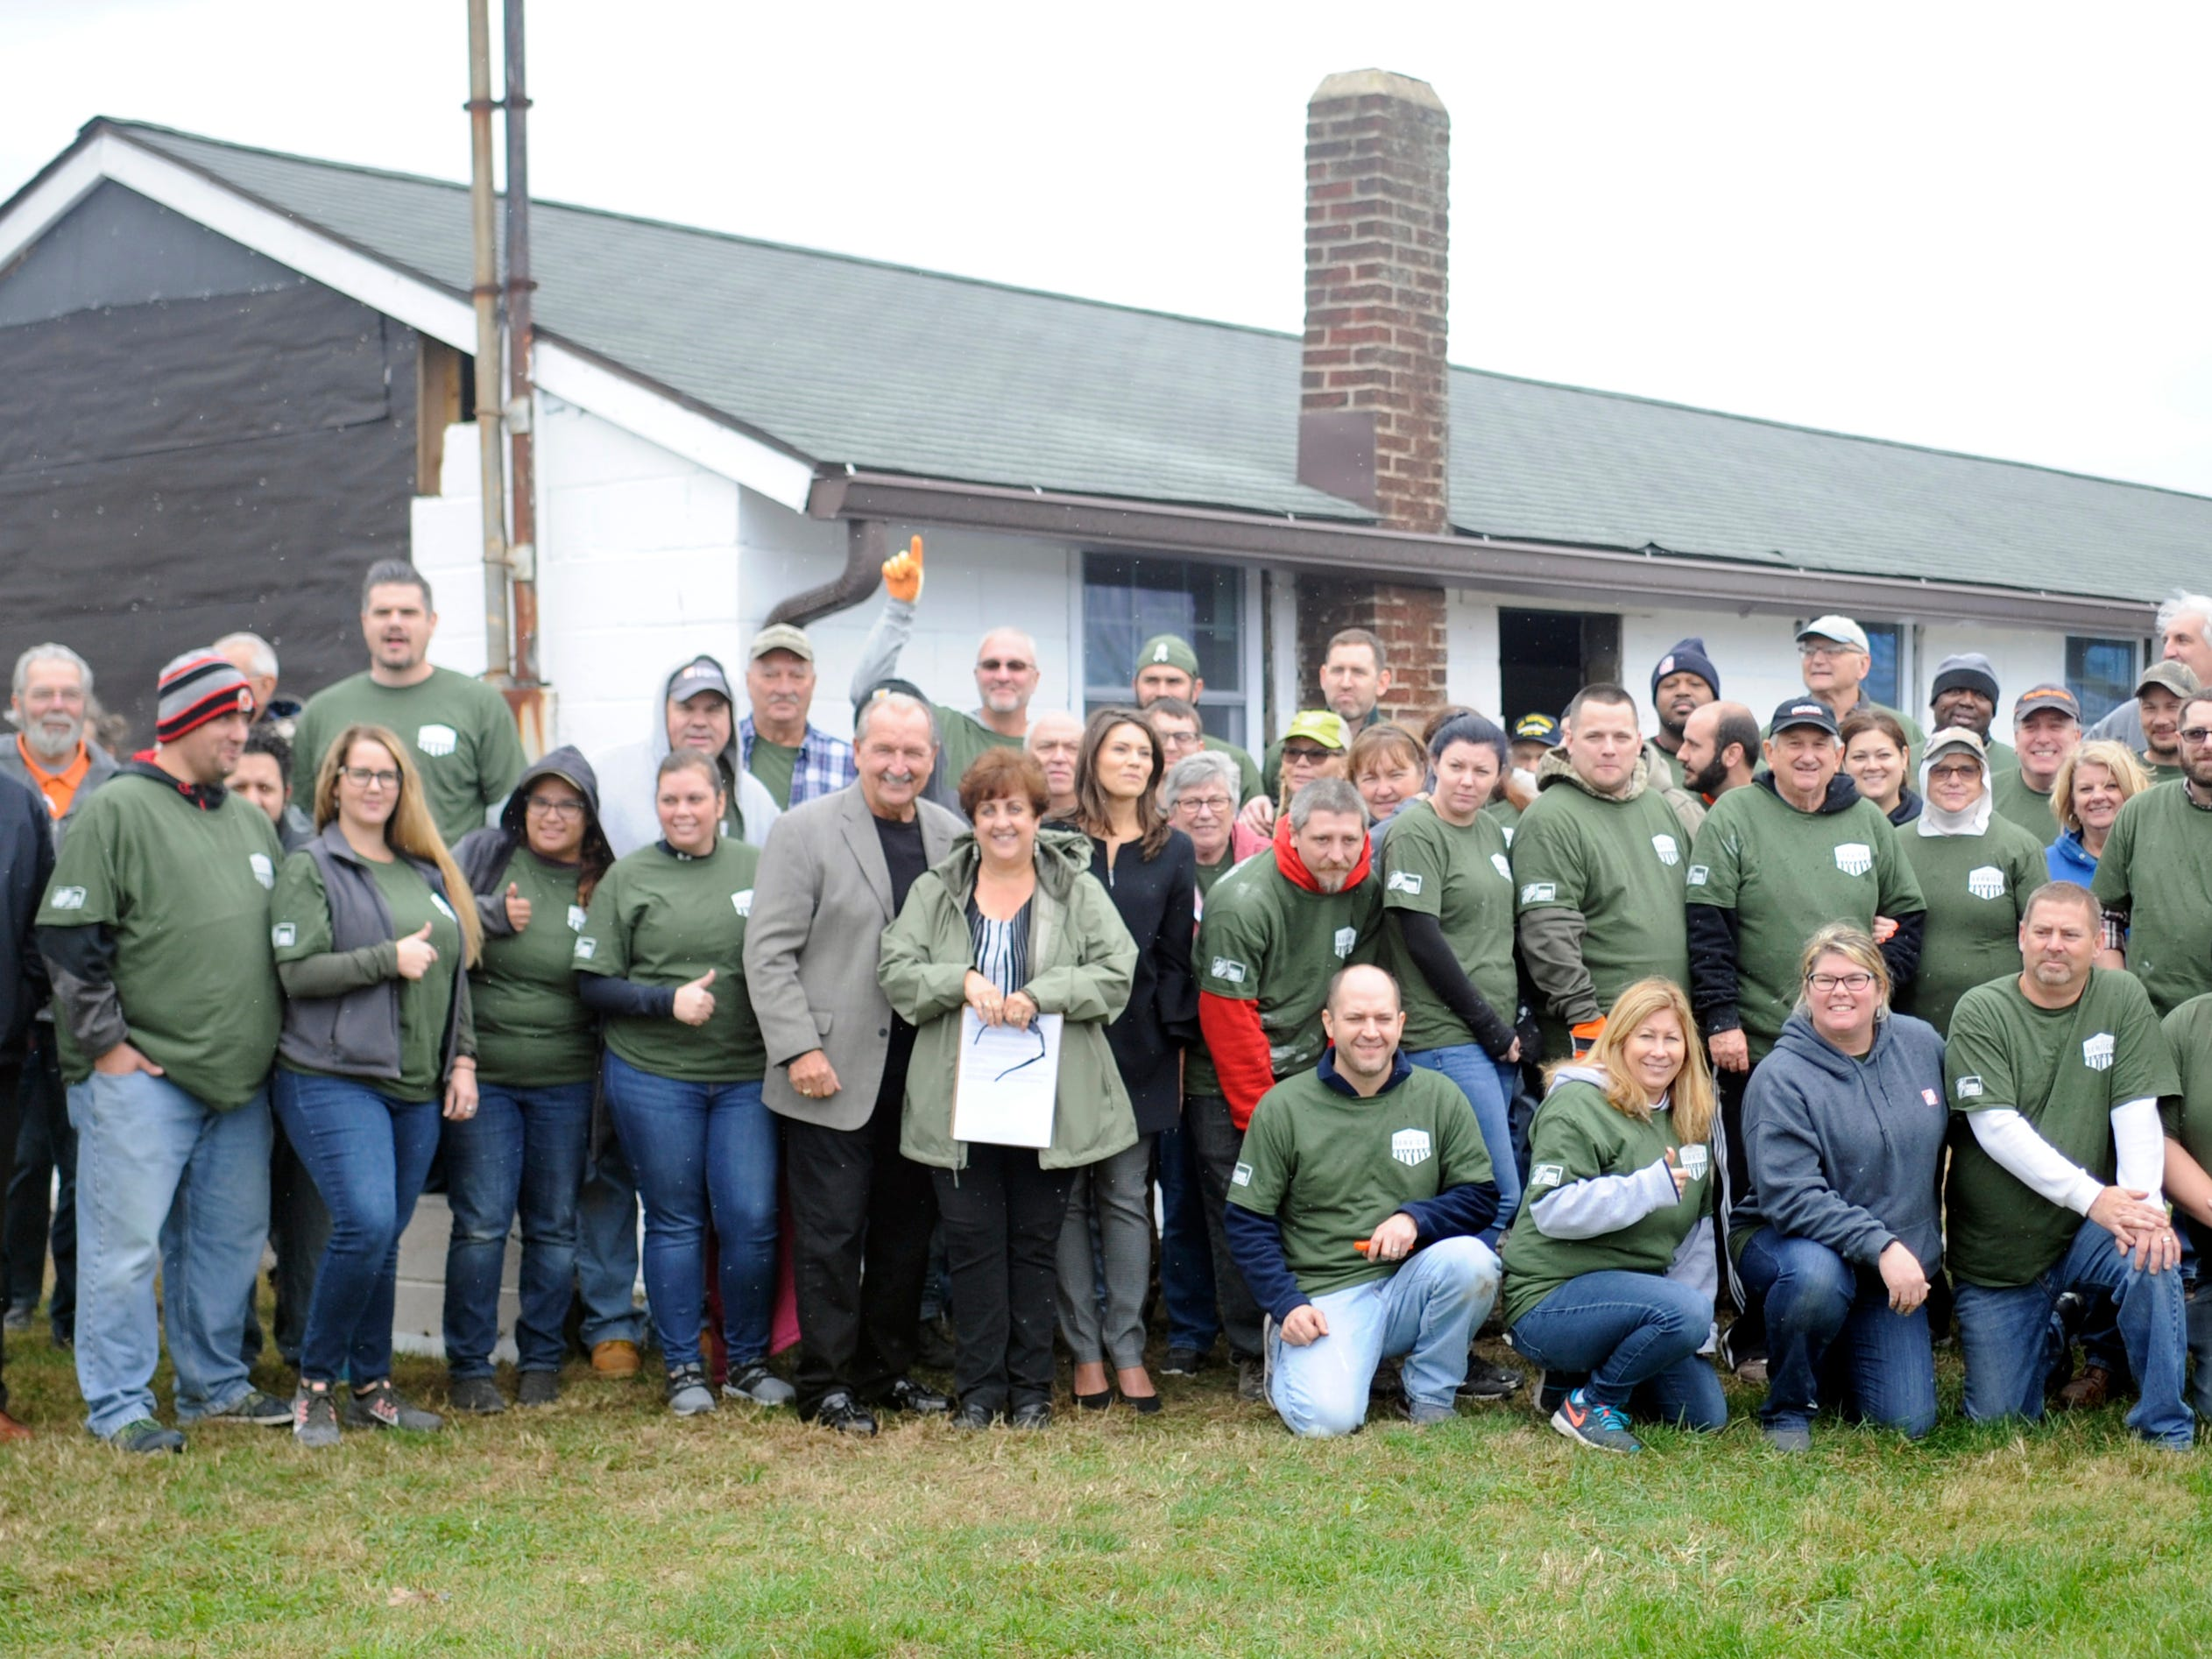 Members of the Home Depot team, Millville Army Airfield Museum staff and Millville City officials pose for a group photo during a special building renovation event on Friday, November 9, 2018.